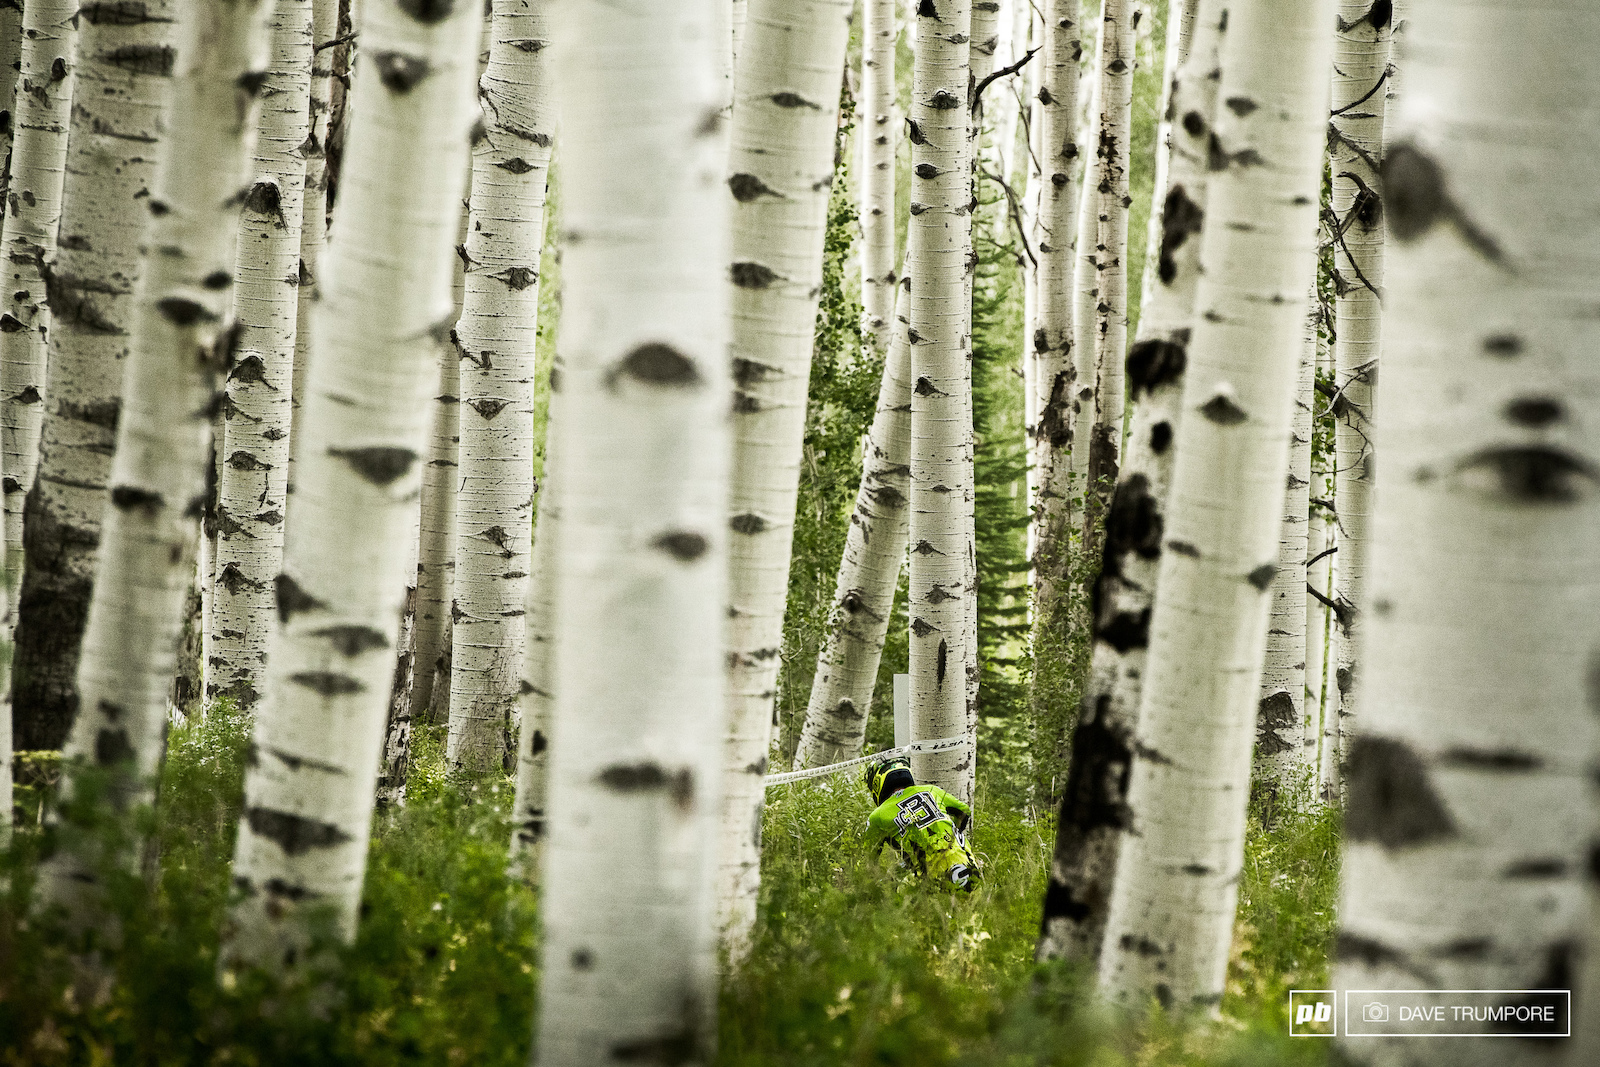 Jerome Clementz dwarfed by some massive aspen trees at the bottom of stage 4.